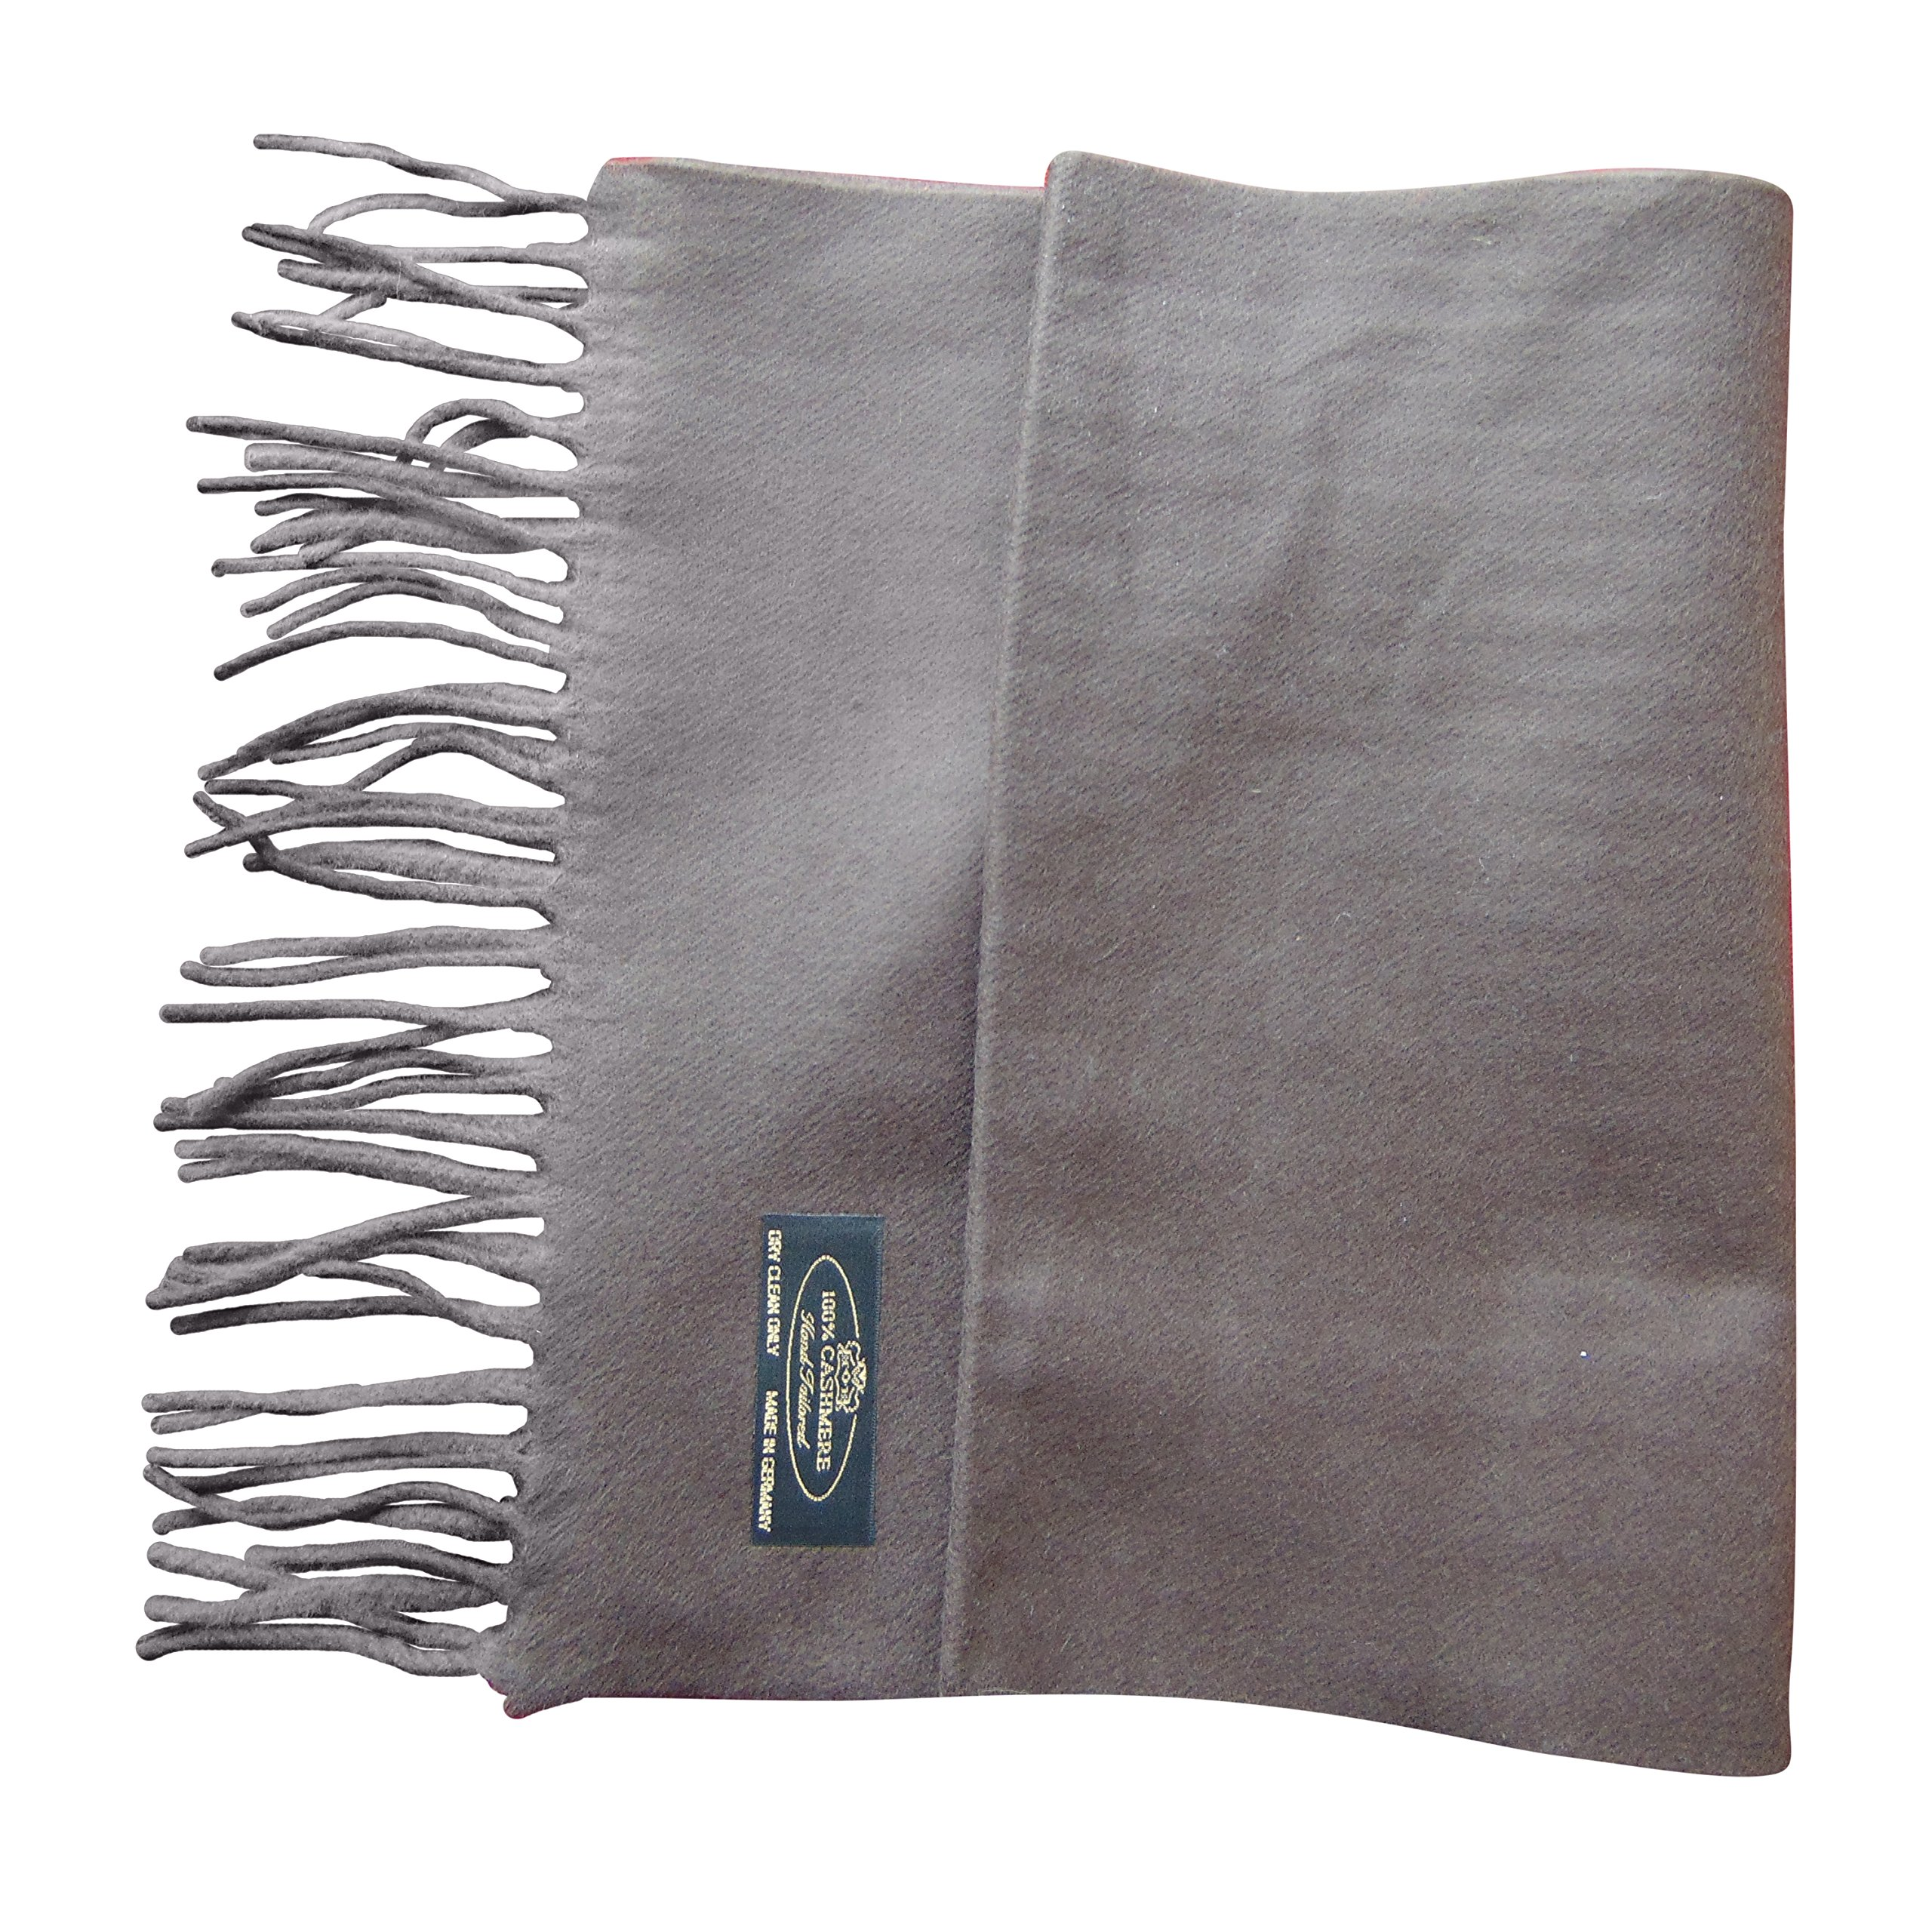 Annys Super Soft 100% Cashmere Scarf 12 X 72 with Gift Bag (Dark Brown)